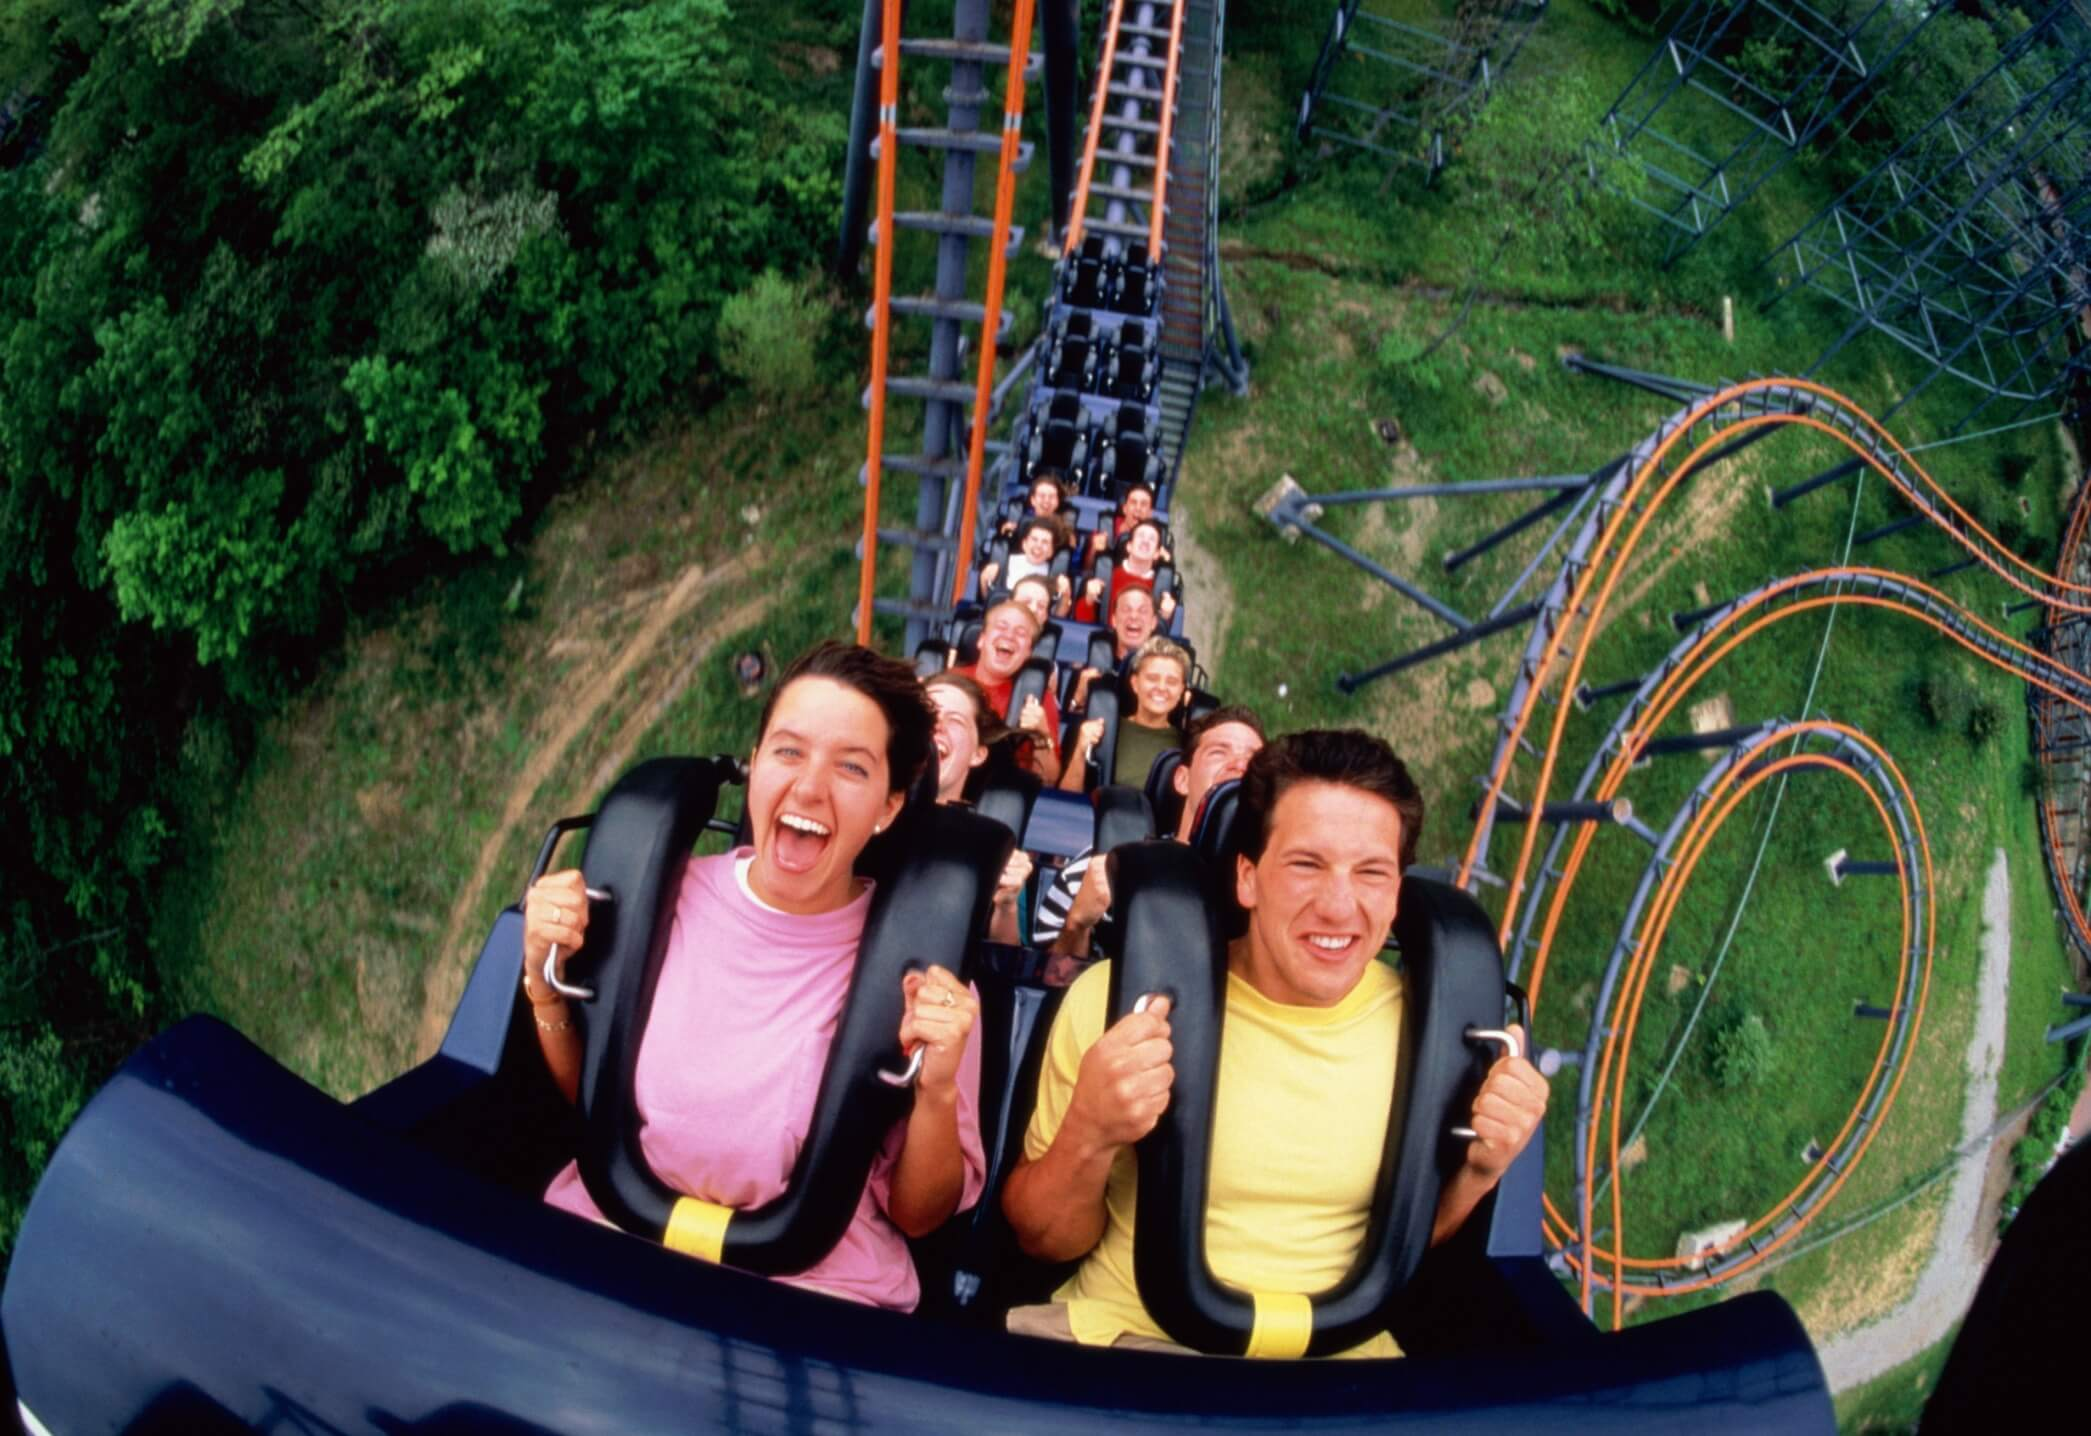 People on roller coaster, elevated view, (wide angle)